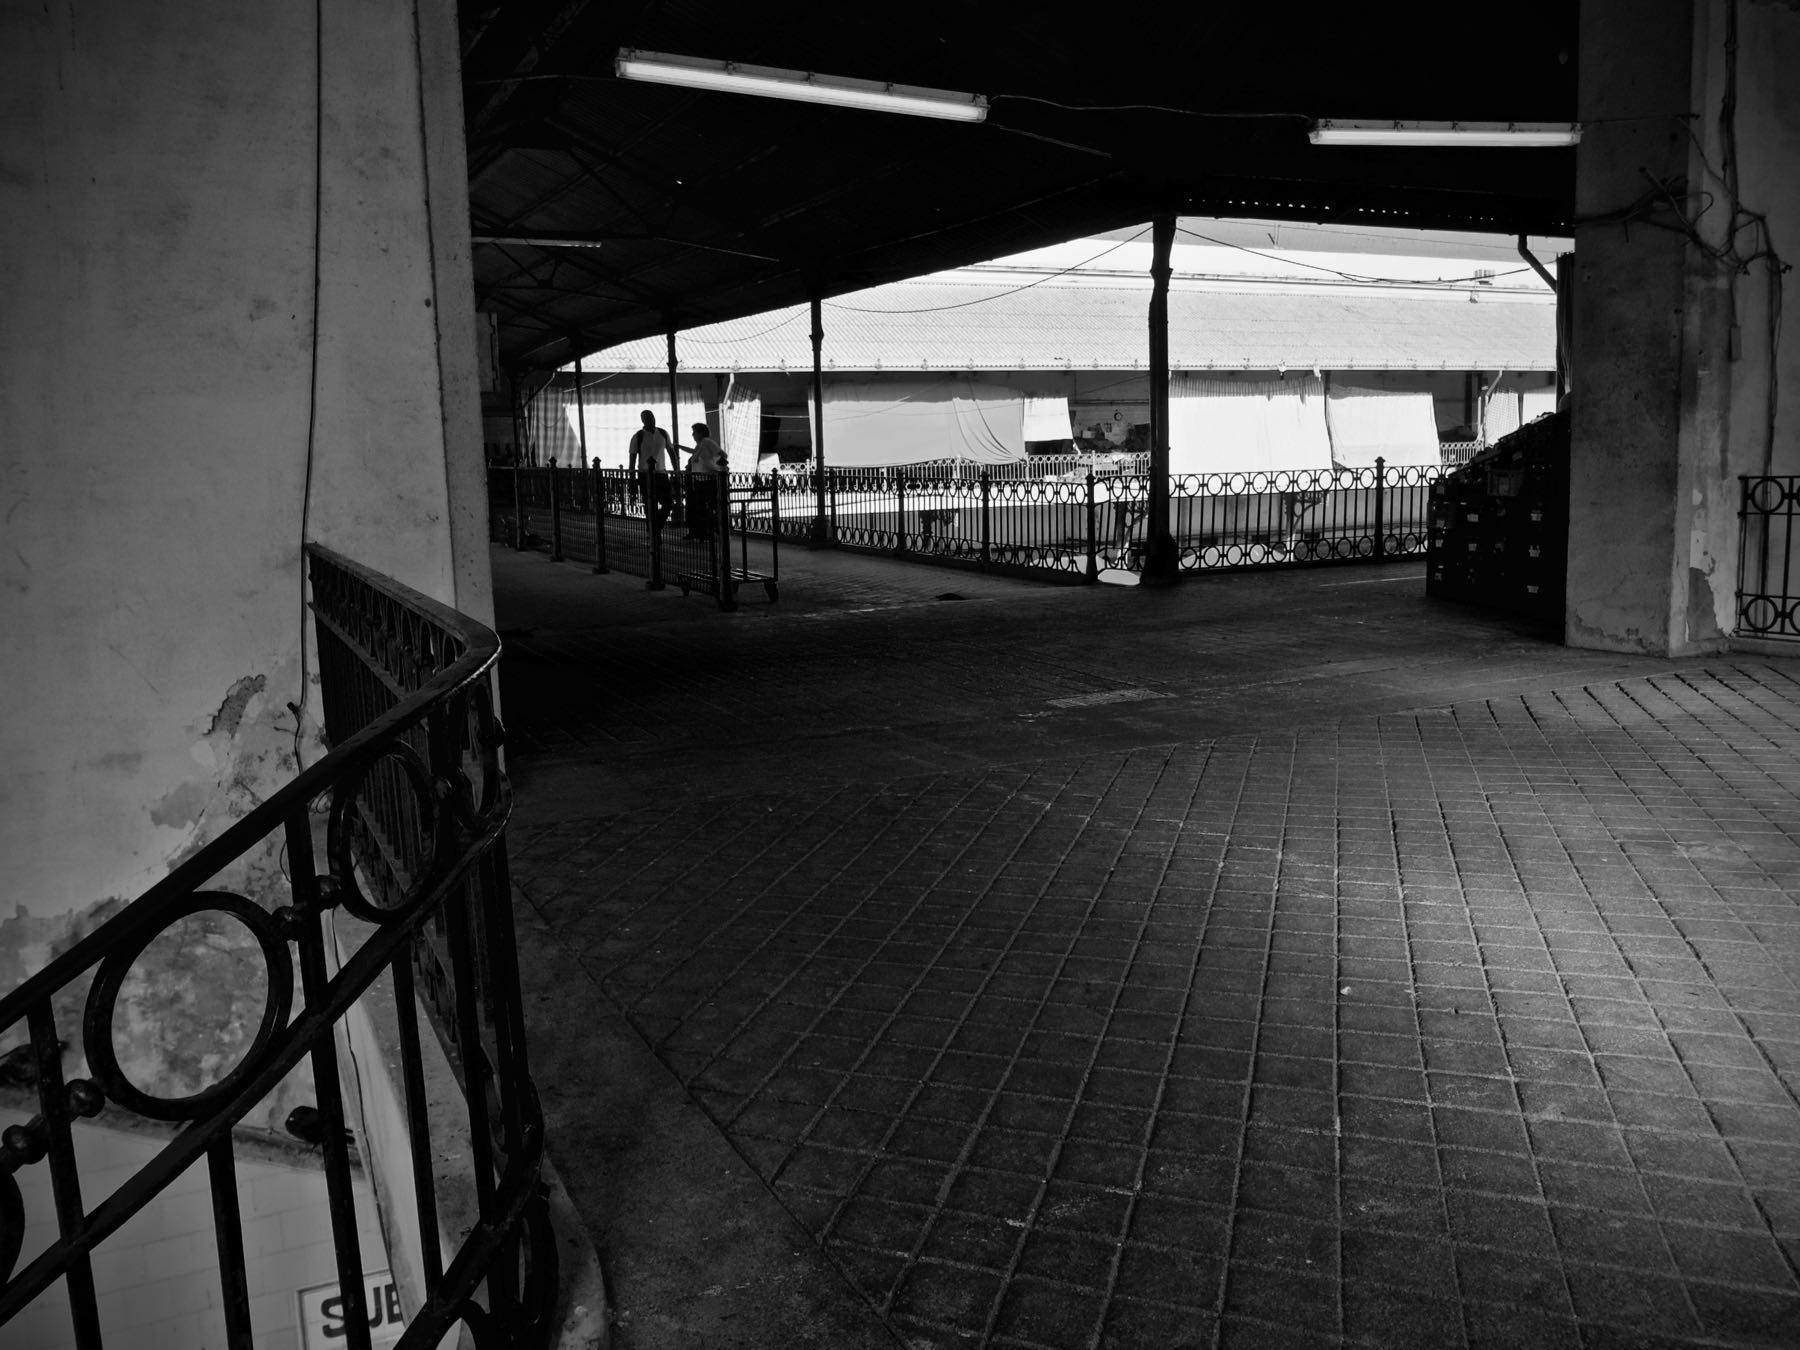 Massimiliano Scarpa Photographer Mercado do Bolhao 2012 oporto Portugal